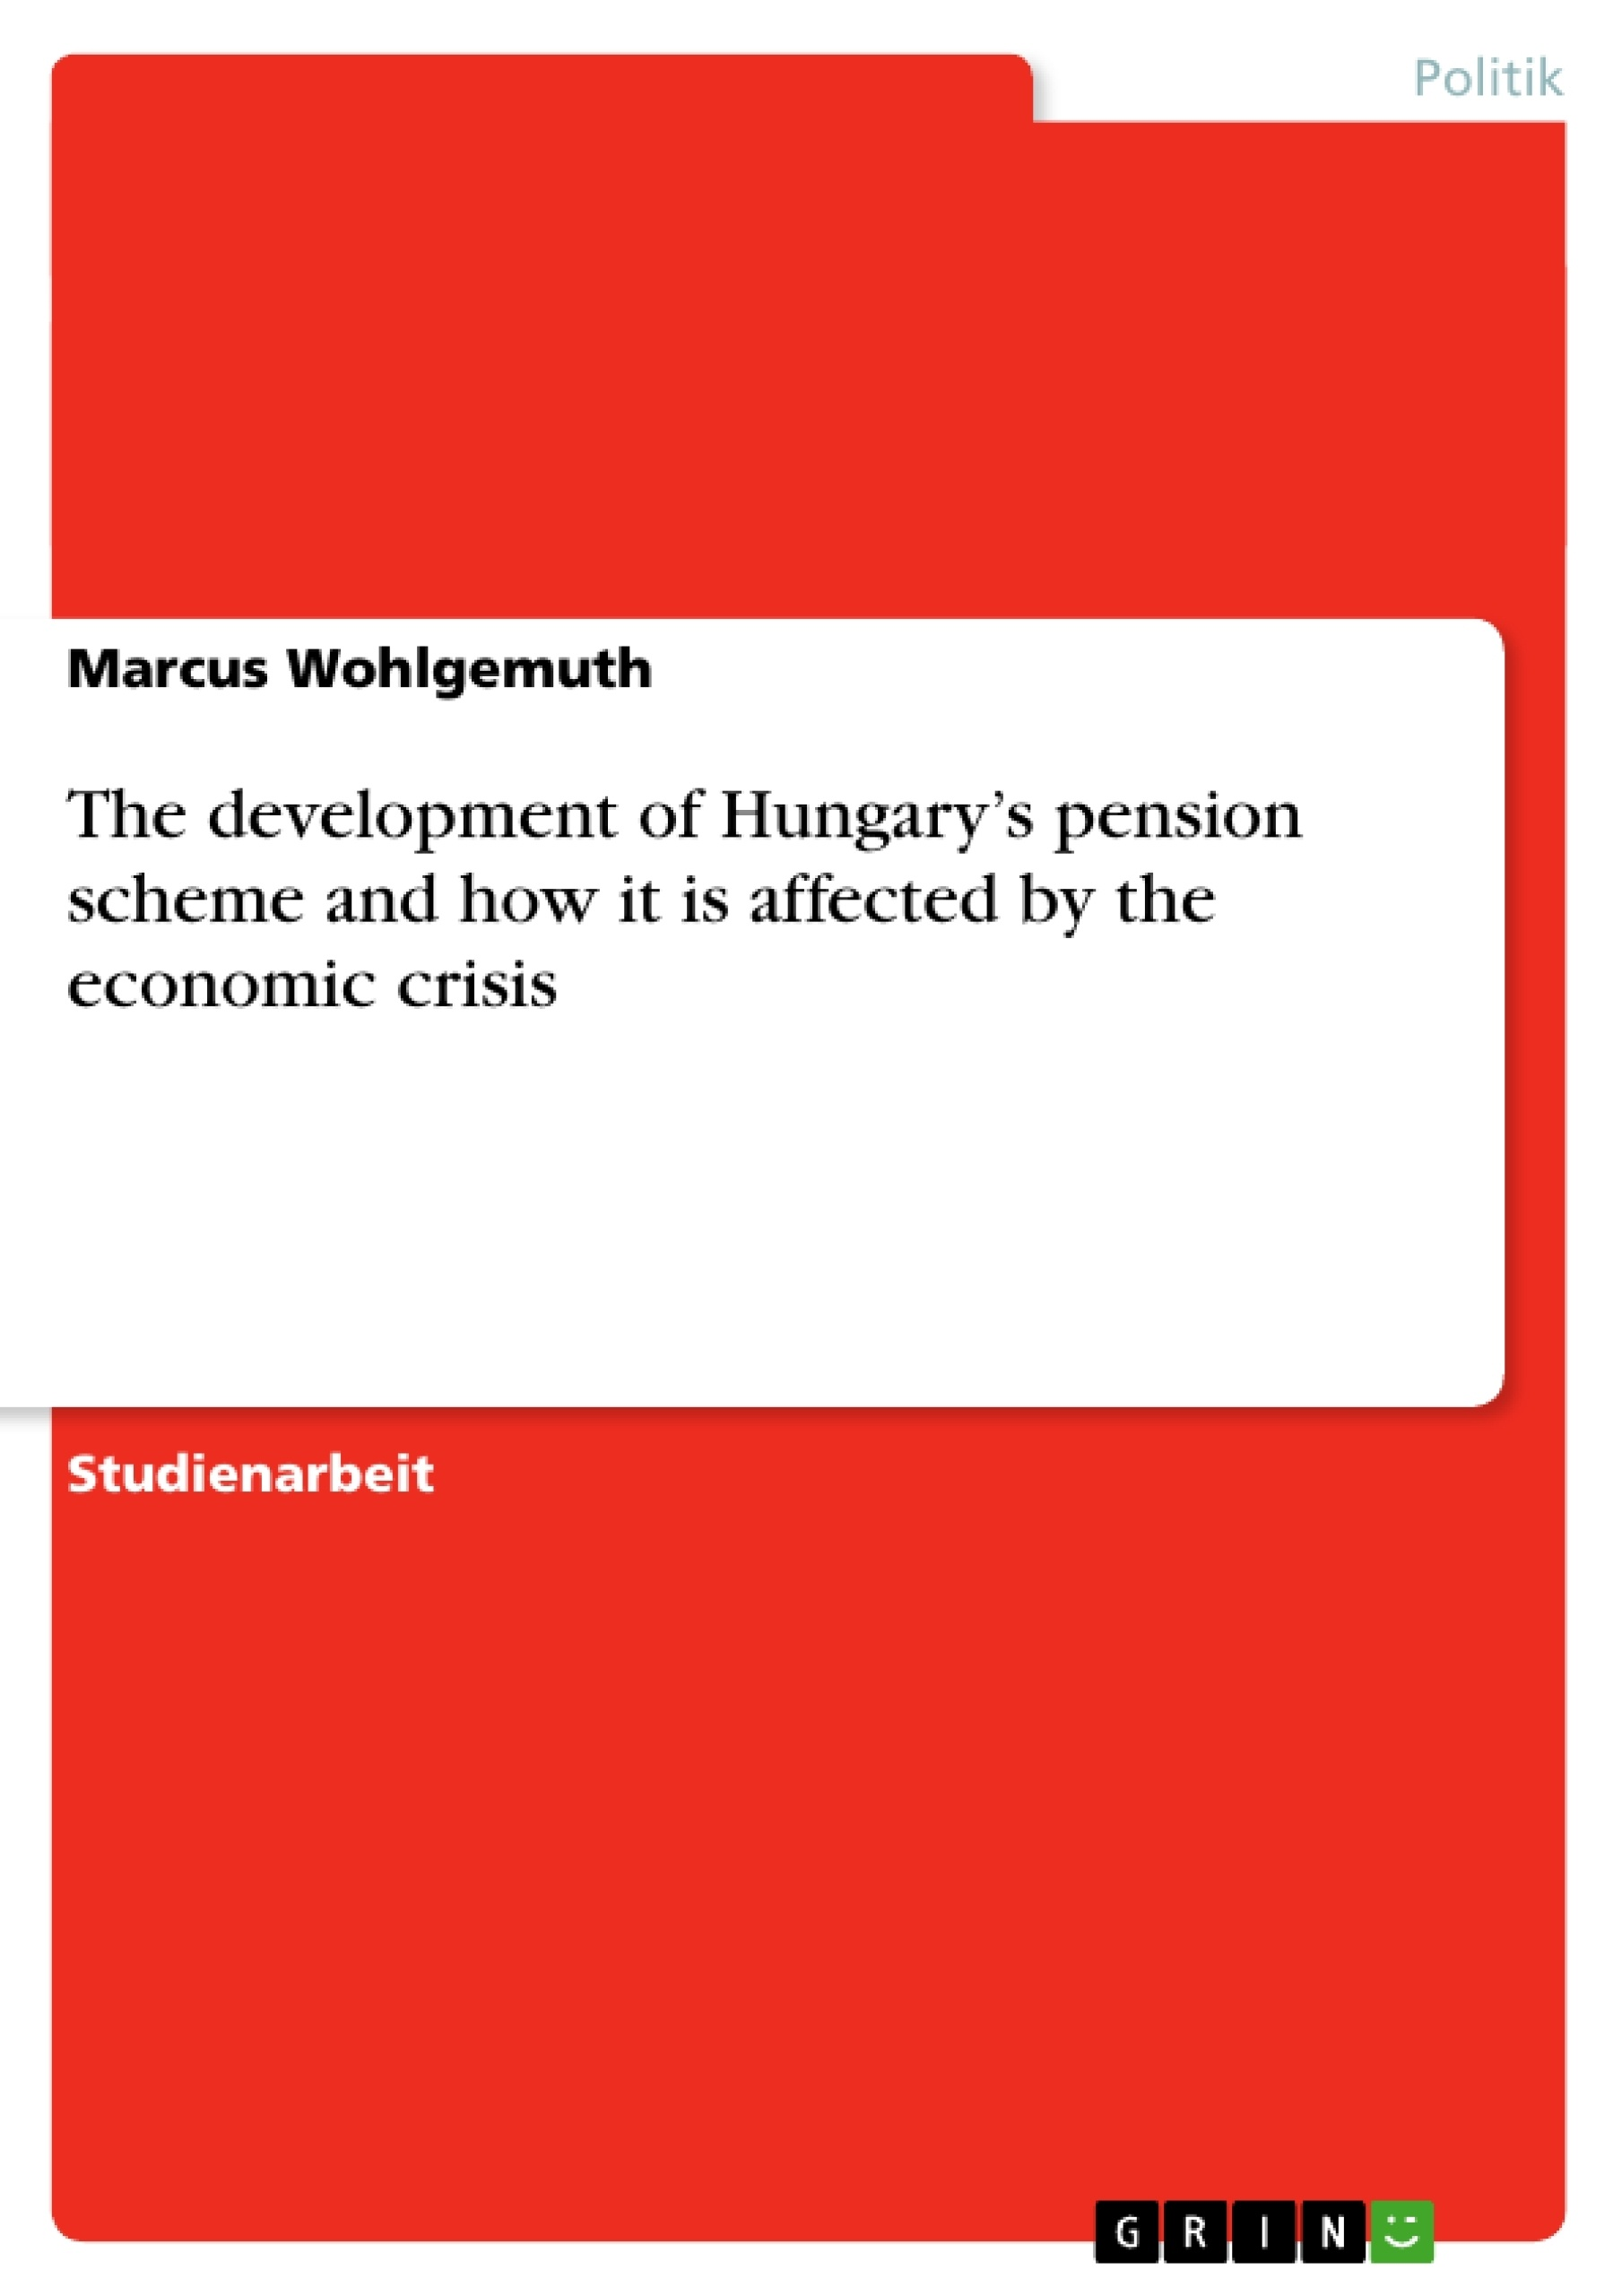 Titel: The development of Hungary's pension scheme and how it is affected by the economic crisis